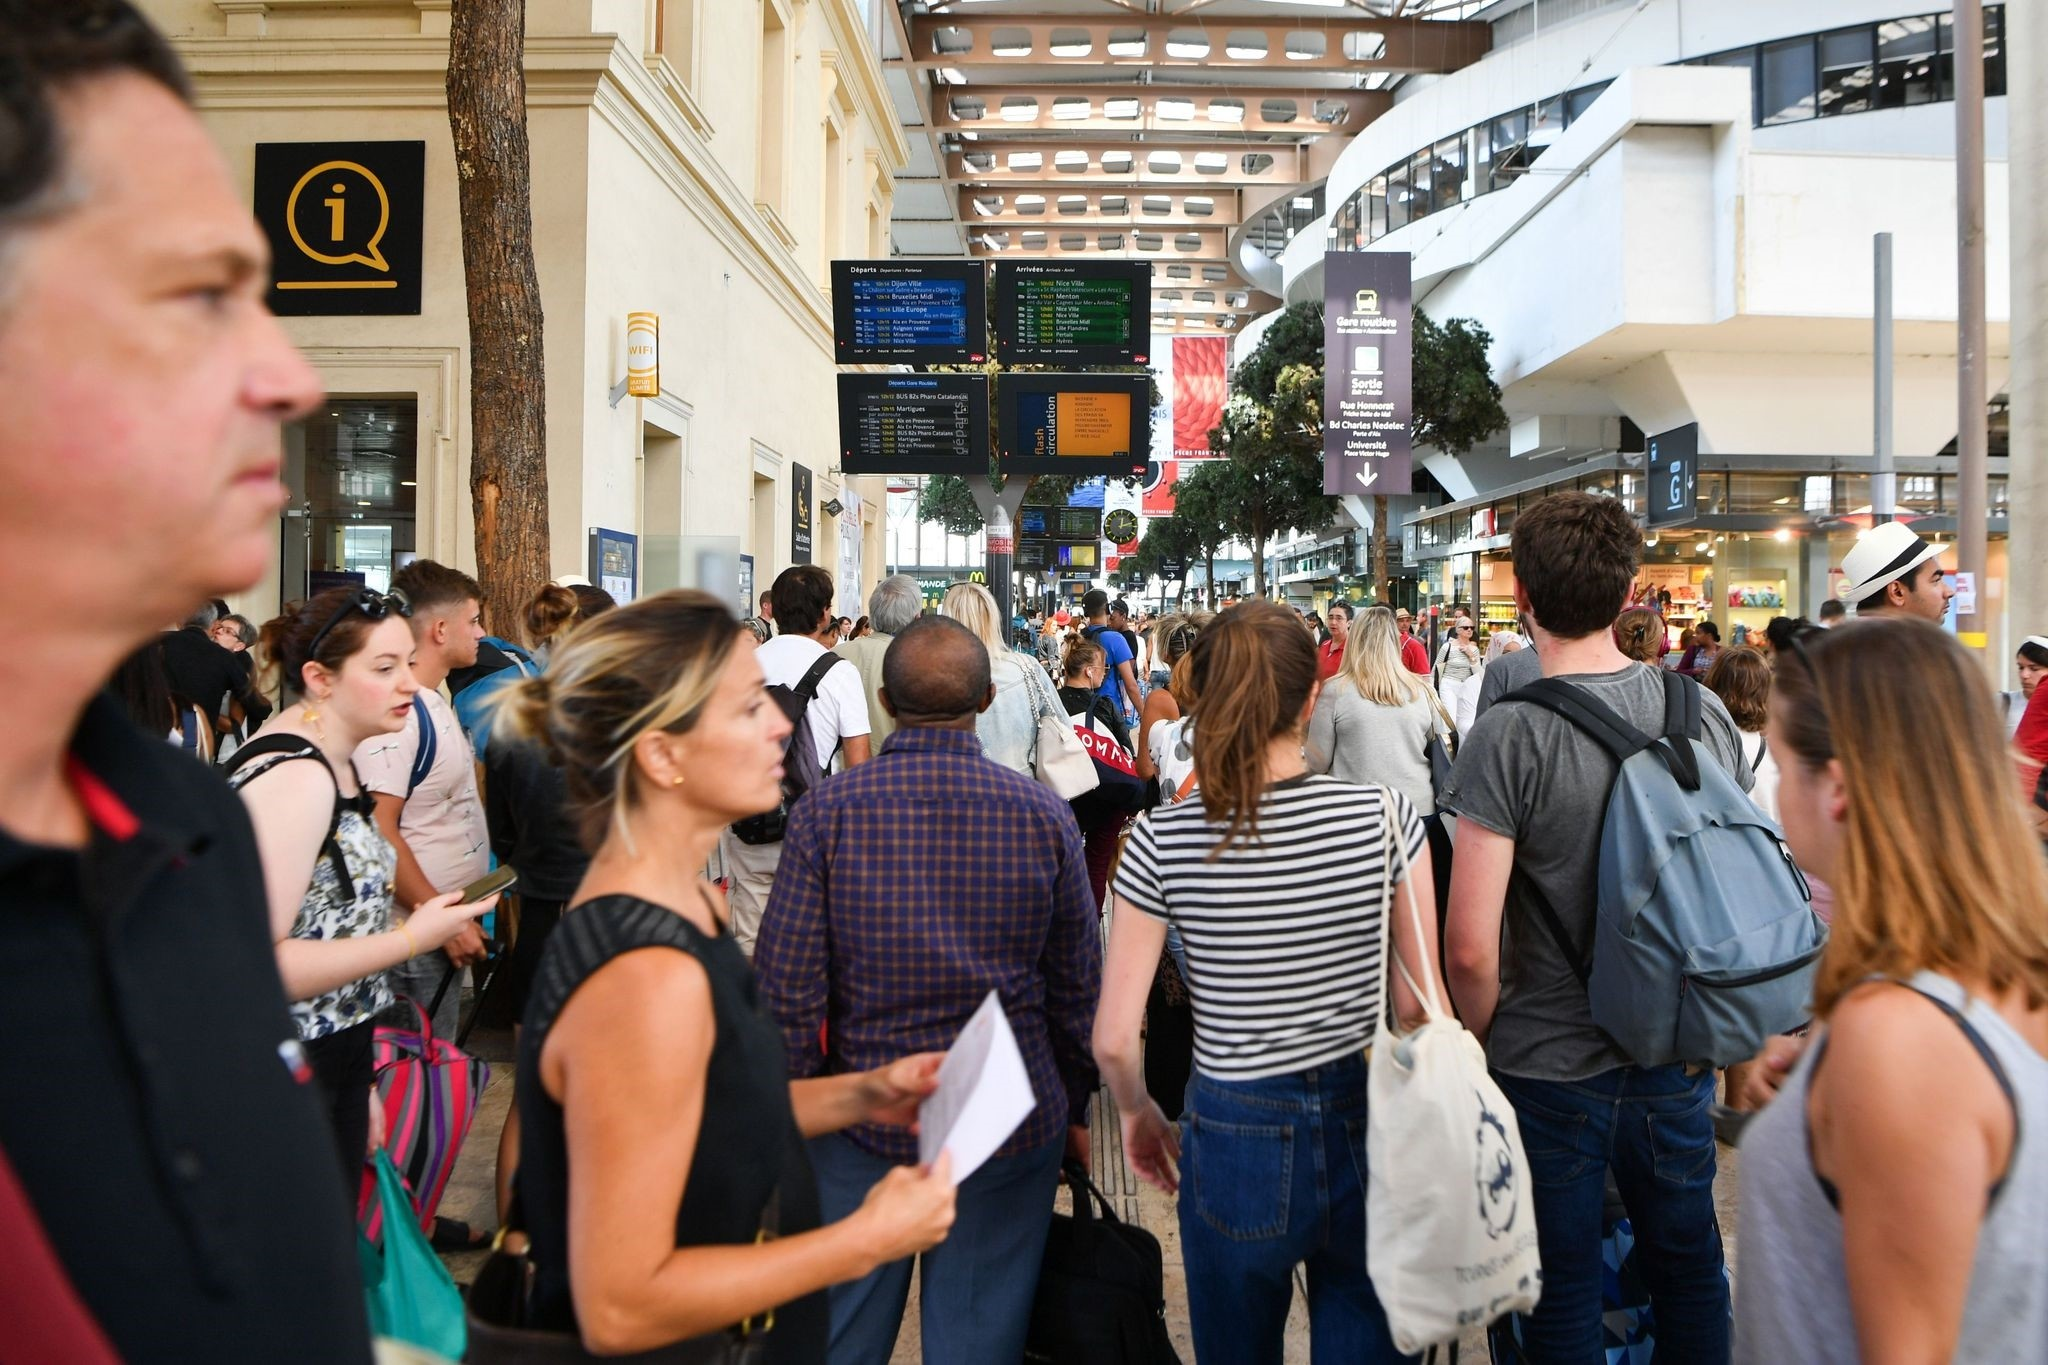 Passengers look at information monitors as they wait for their trains at The Saint-Charles Station in Marseille on August 20, 2017. (AFP Photo)